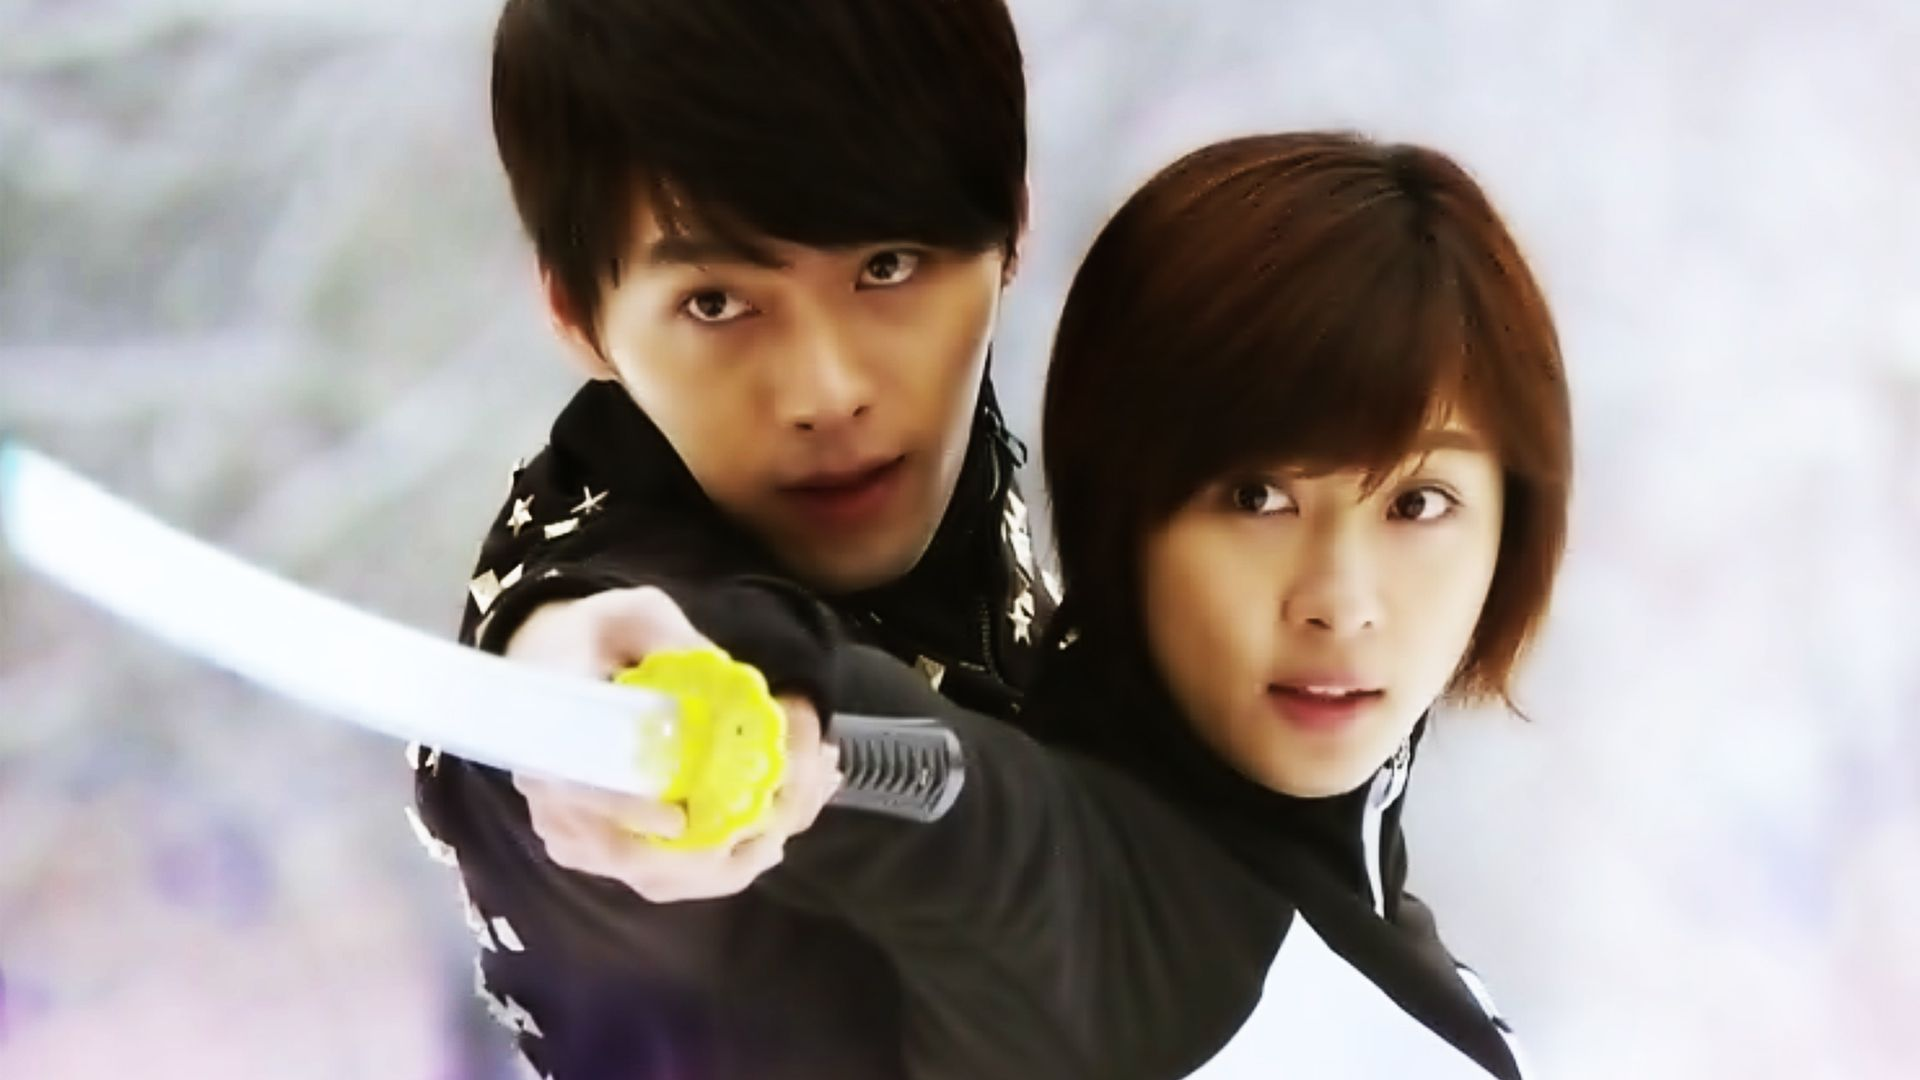 1920x1080 Wallpapers Ha Ji Won Secret Garden Hyunbin X Hajiwon 1920x1080 ...